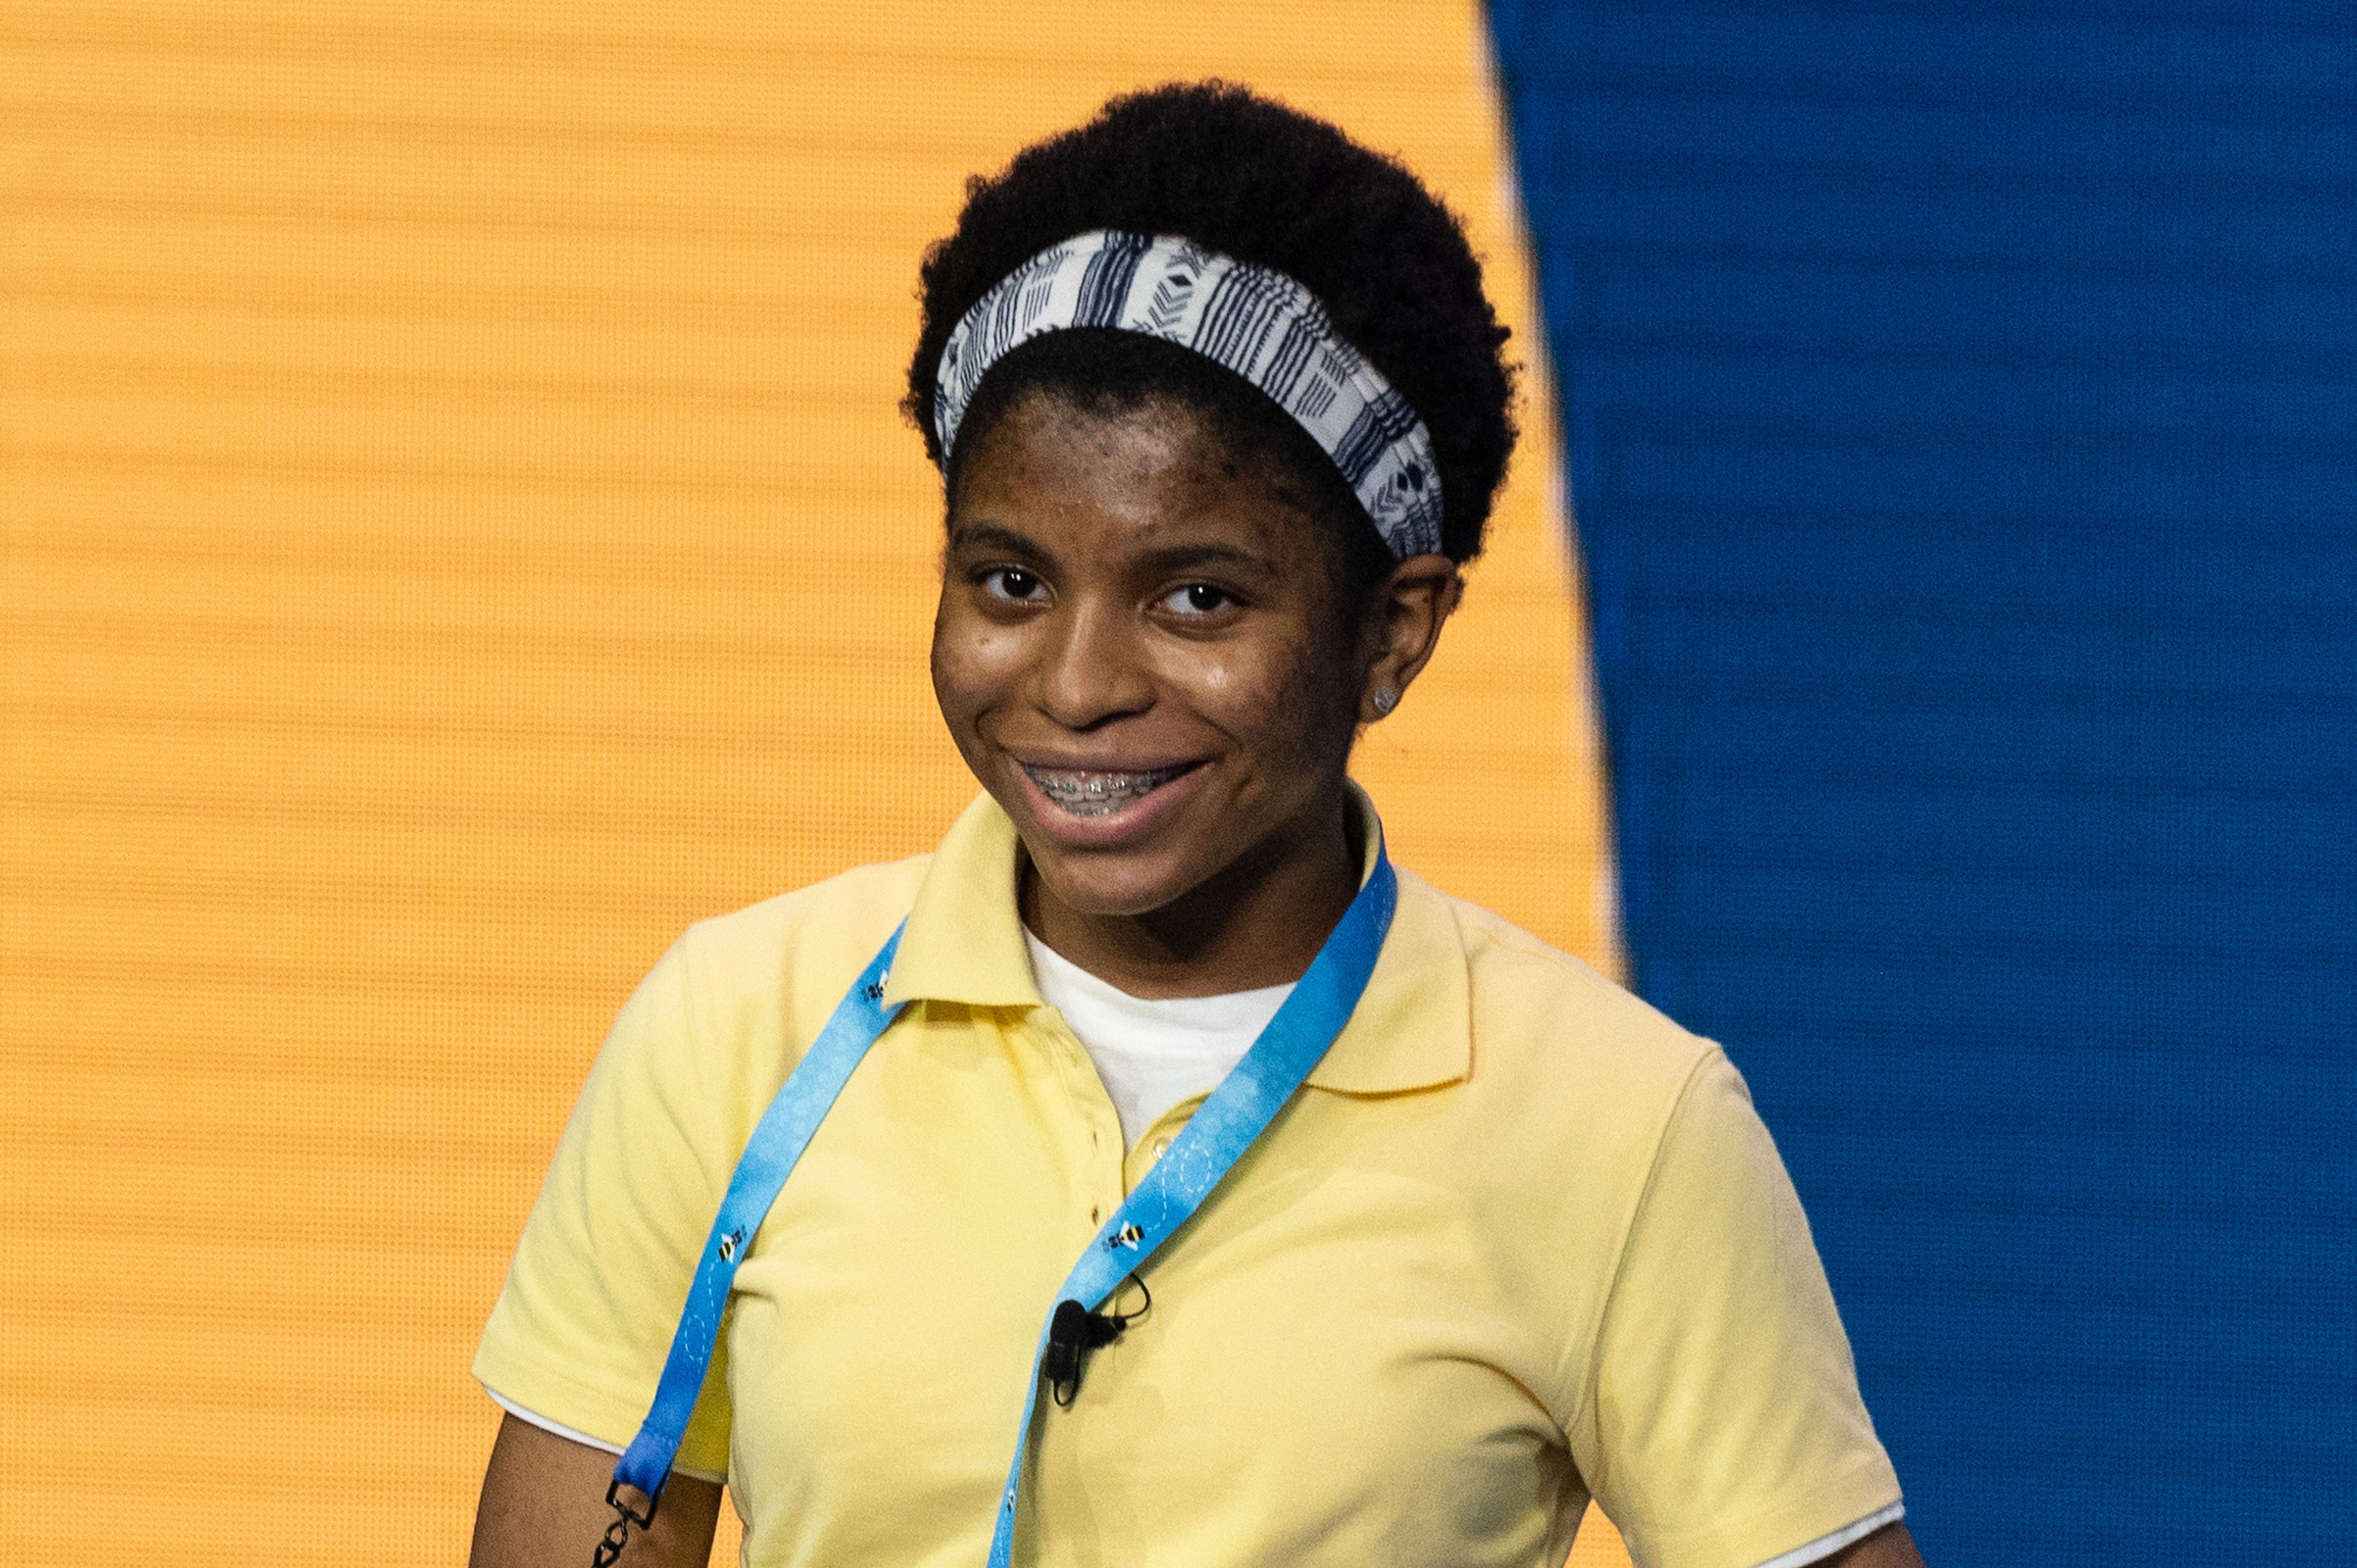 Louisiana Teen Makes History as First Black Scripps Spelling Bee Champ